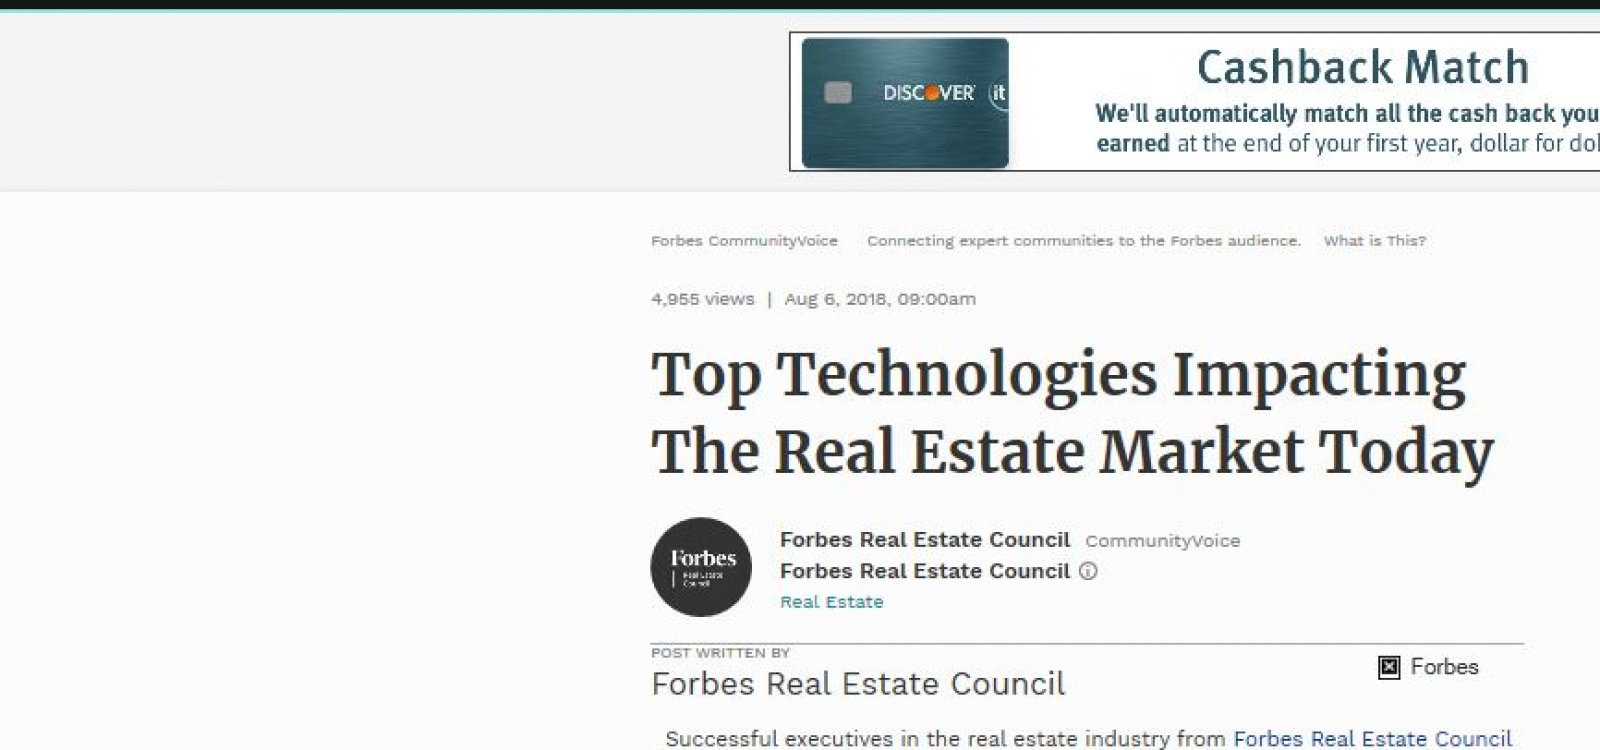 Top Technologies Impacting The Real Estate Market Today